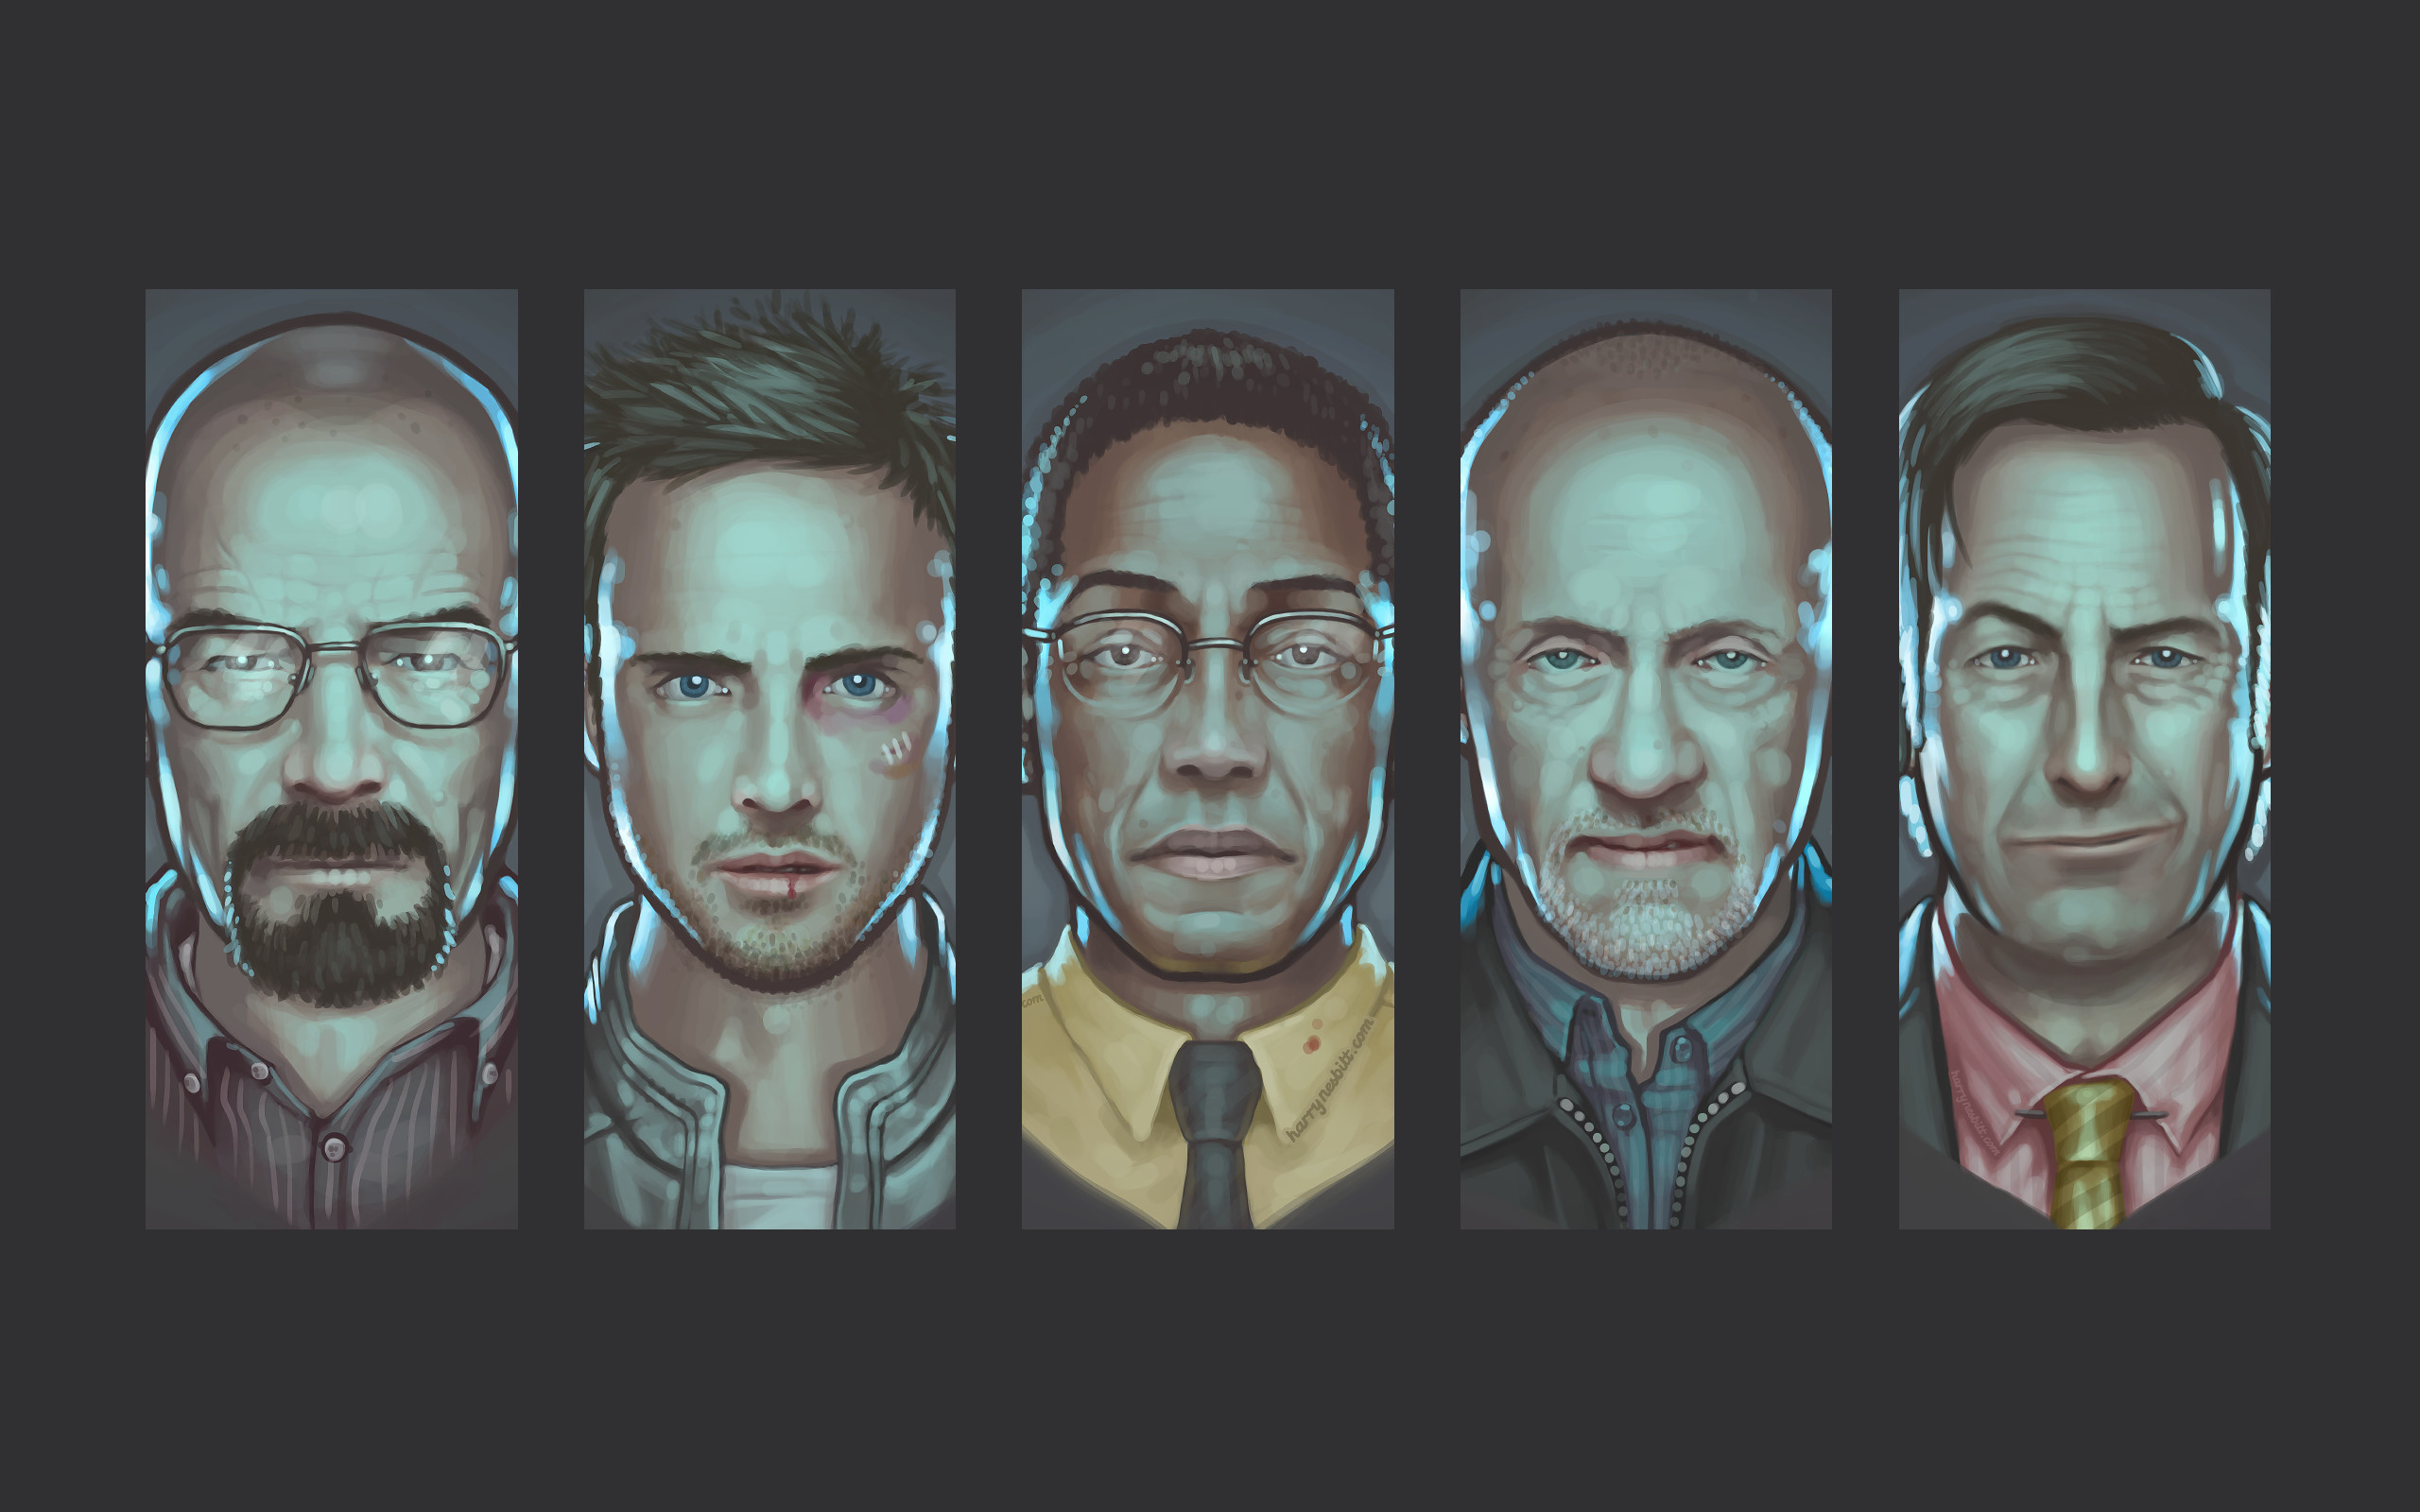 2560x1600 Breaking Bad - Wallpaper 2. by Harry Nesbitt 5,423 views. Wallpaper.